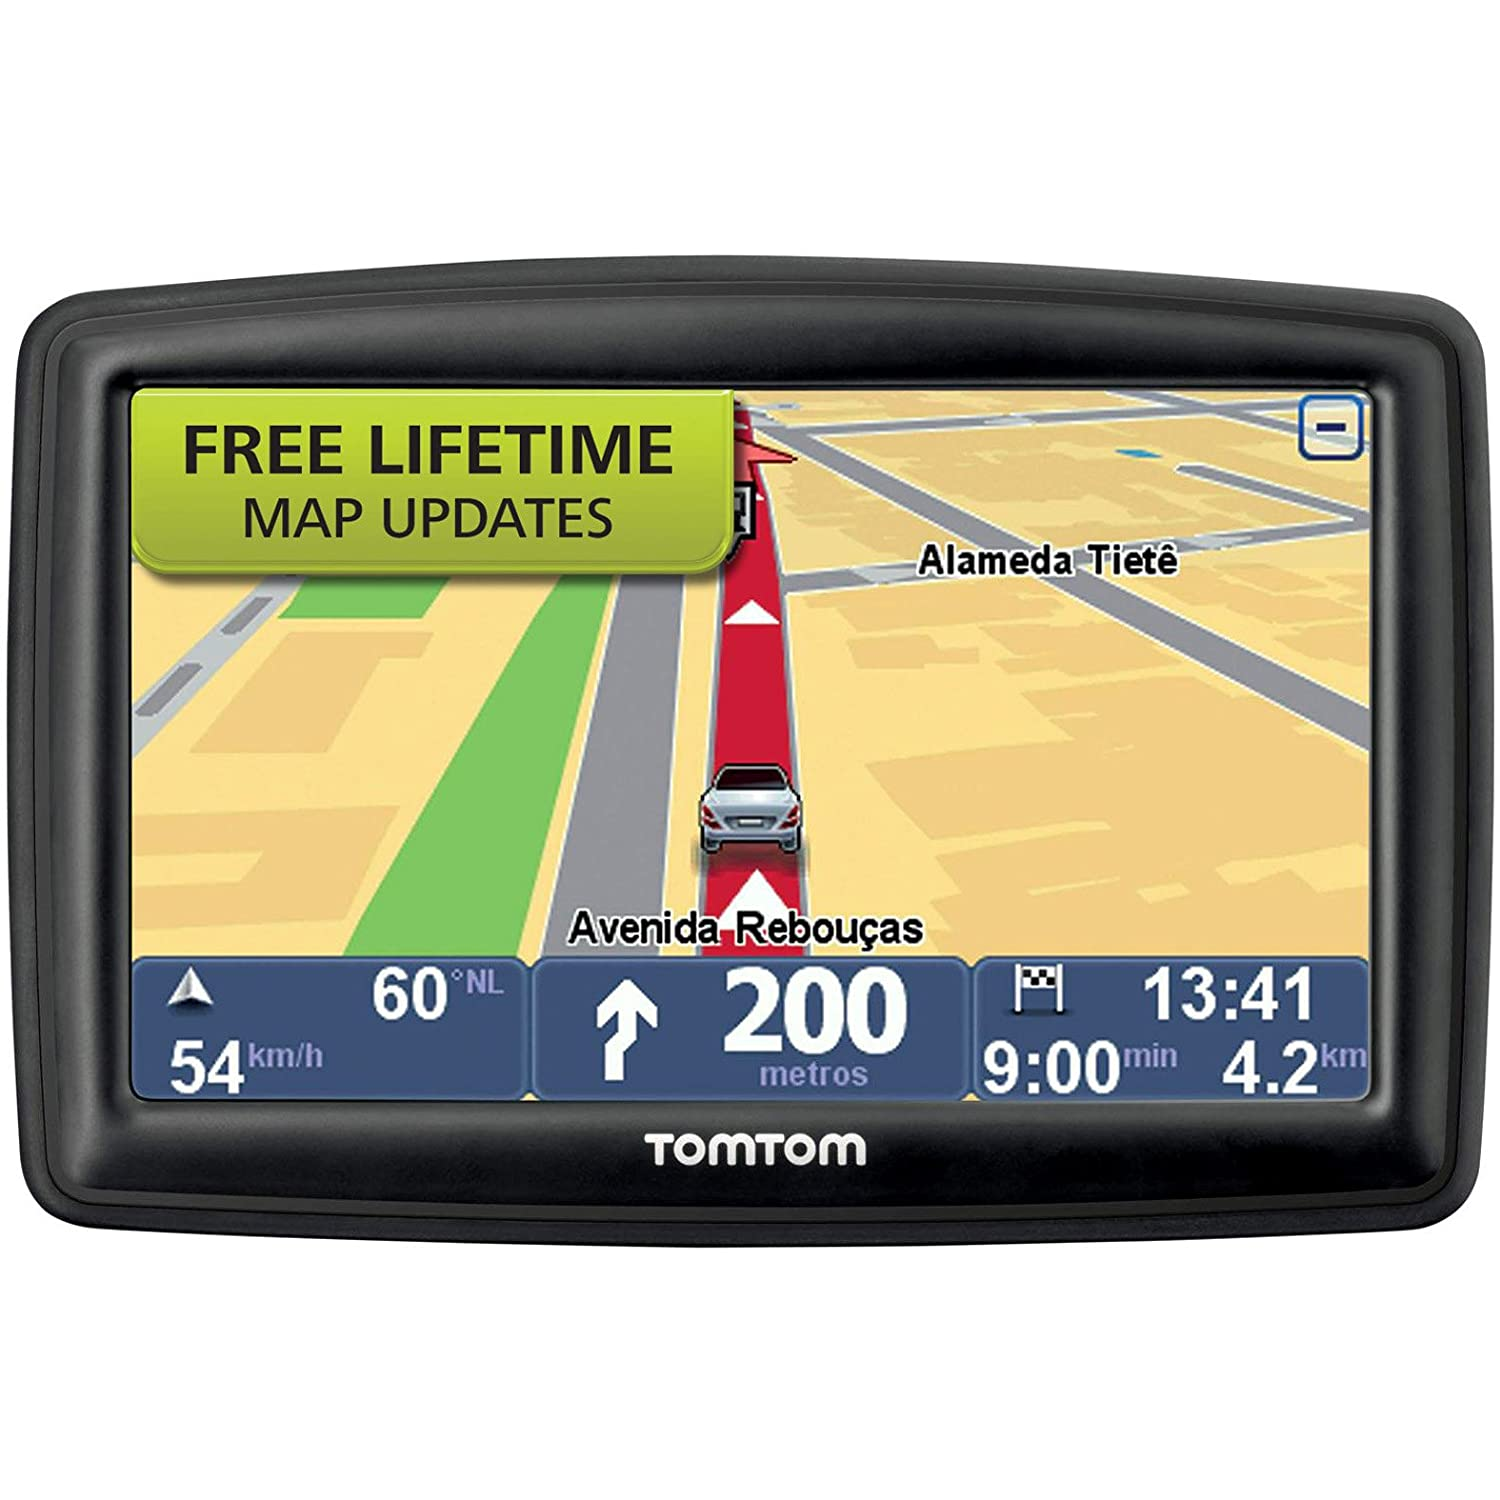 TomTom START M Inch GPS Navigator With Lifetime Maps And - Tomtom gps usa map download free